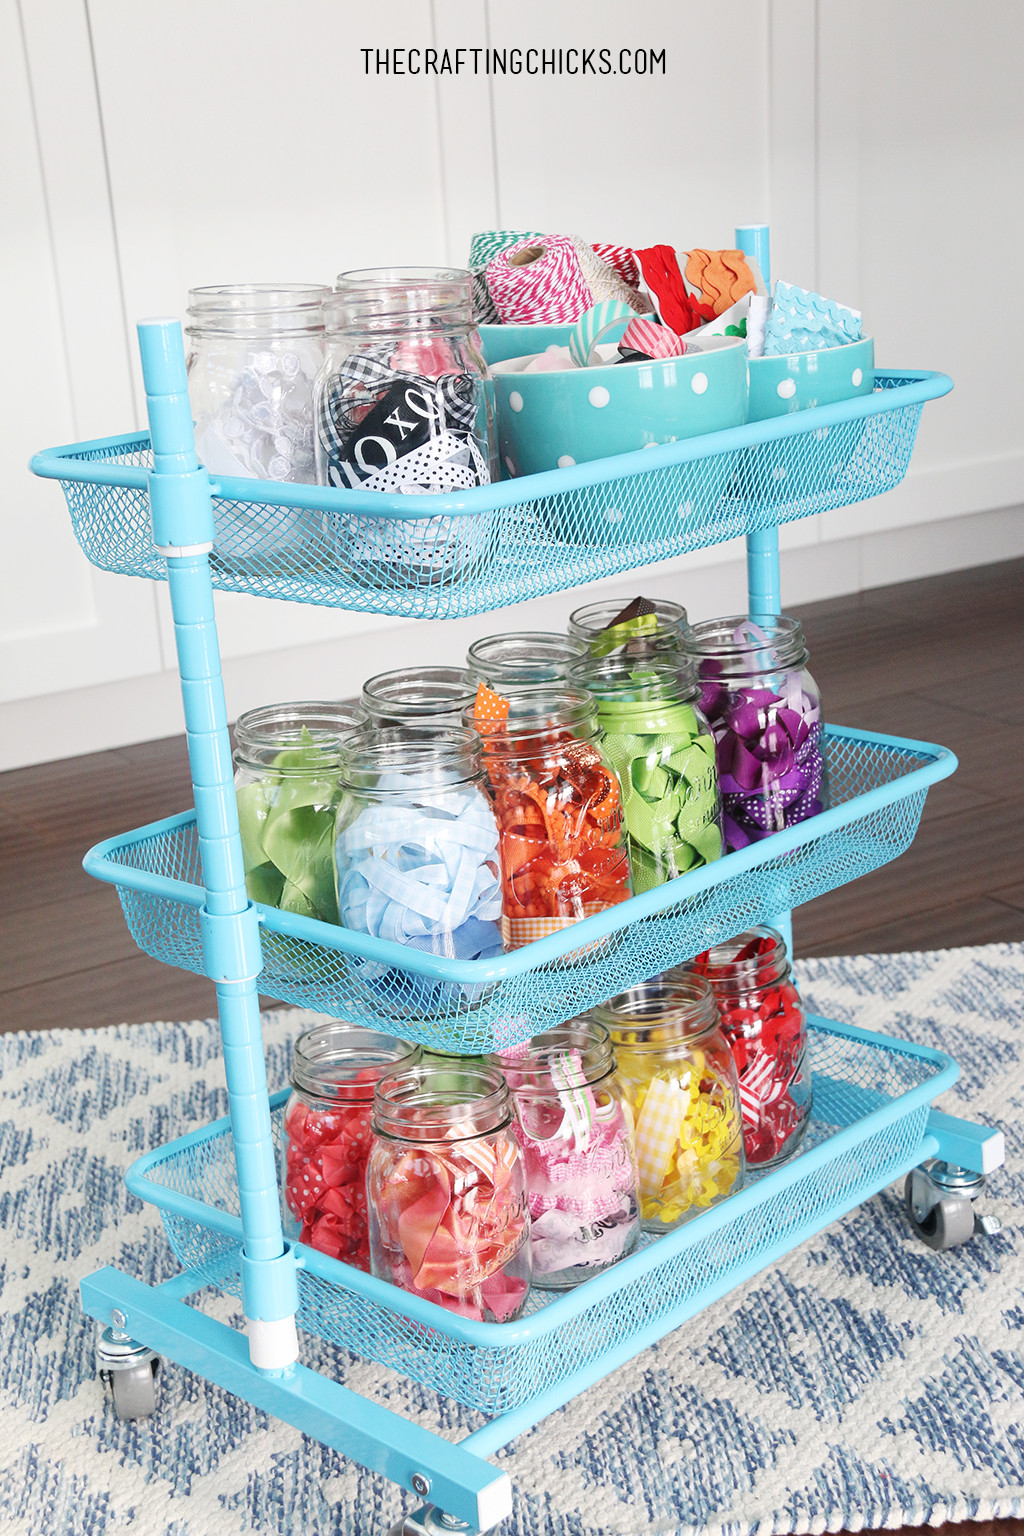 Craft Room Organizing Ideas  Creative Thrifty & Small Space Craft Room Organization